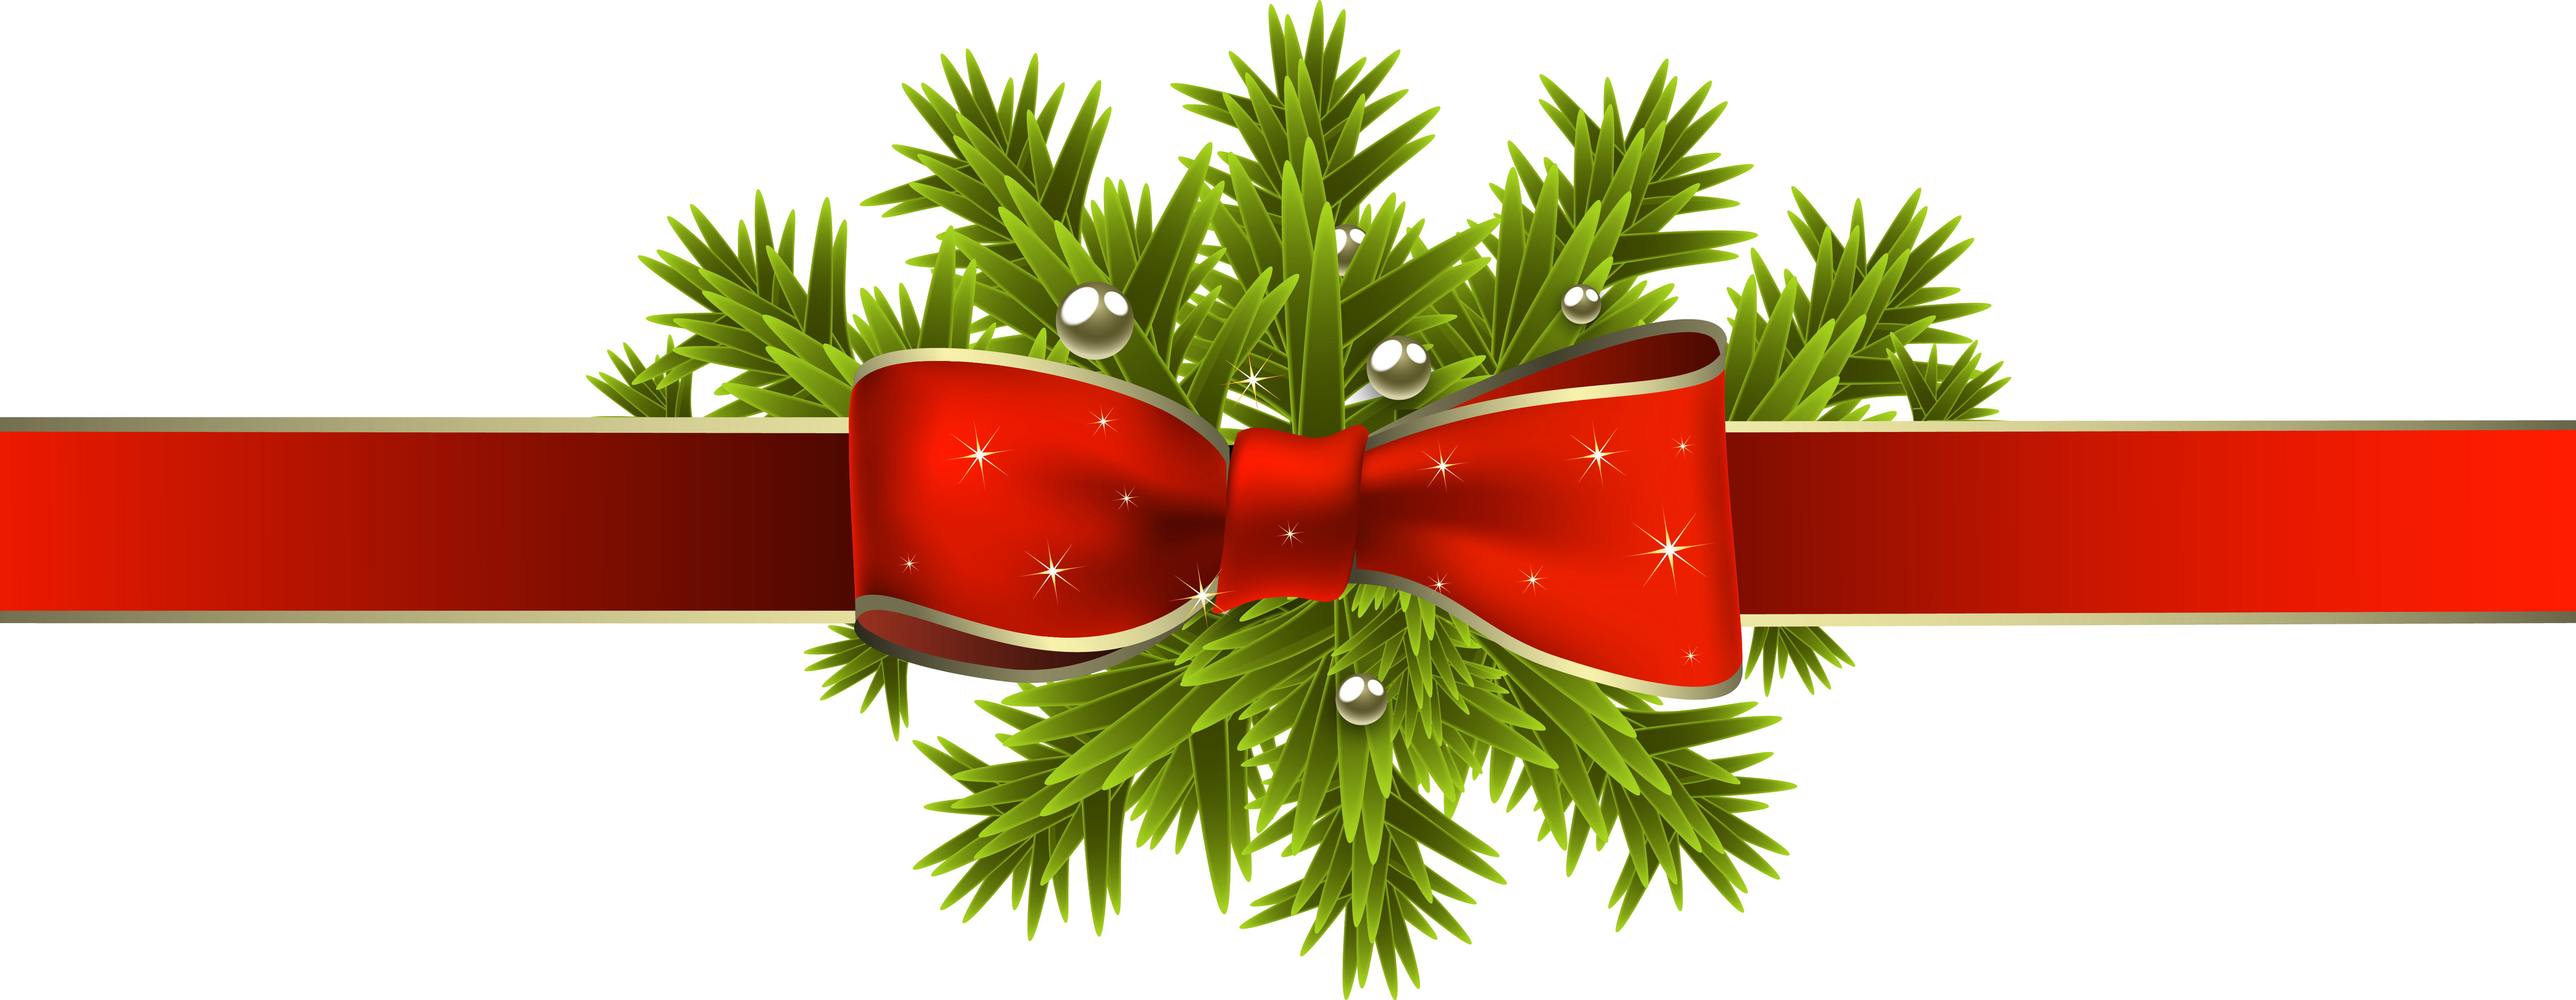 Christmas tree branch clipart clipart transparent Red Christmas Ribbon with Pine Branches PNG Clipart Image clipart transparent